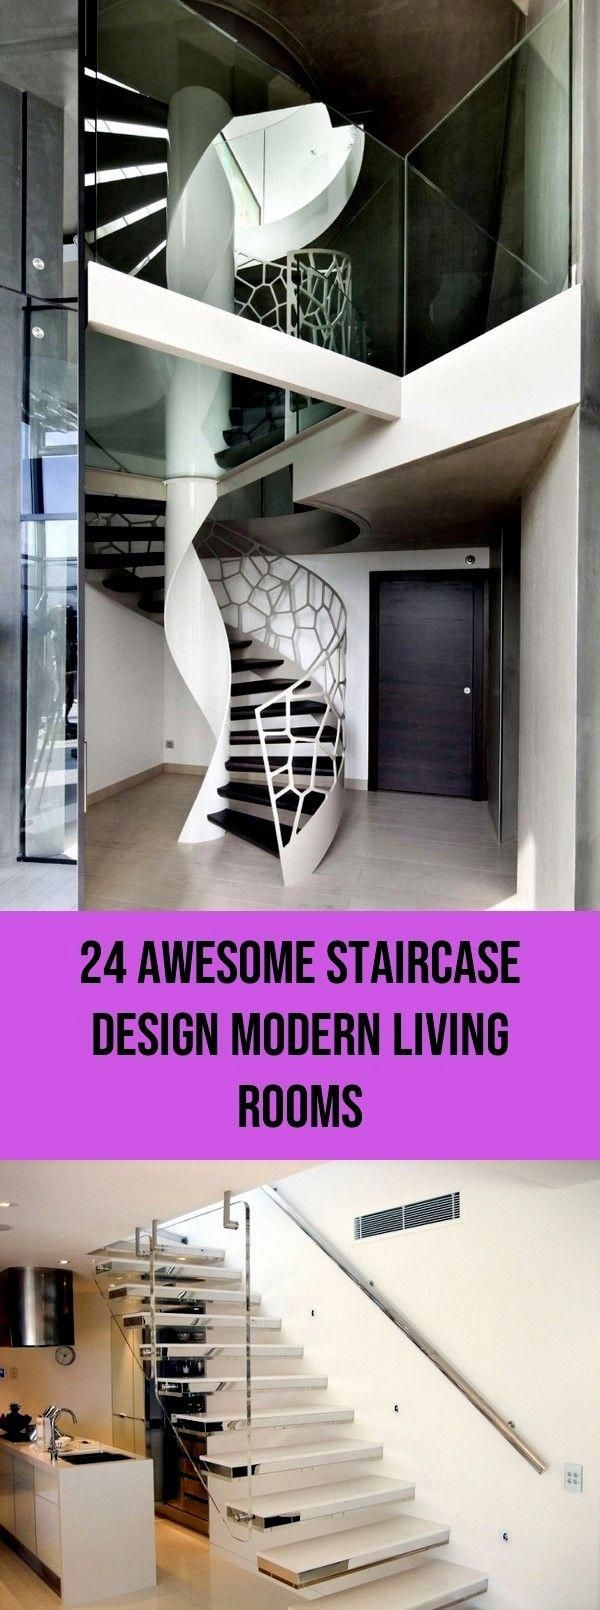 Best Cool Staircase Design Modern Living Rooms Entryway 24 400 x 300